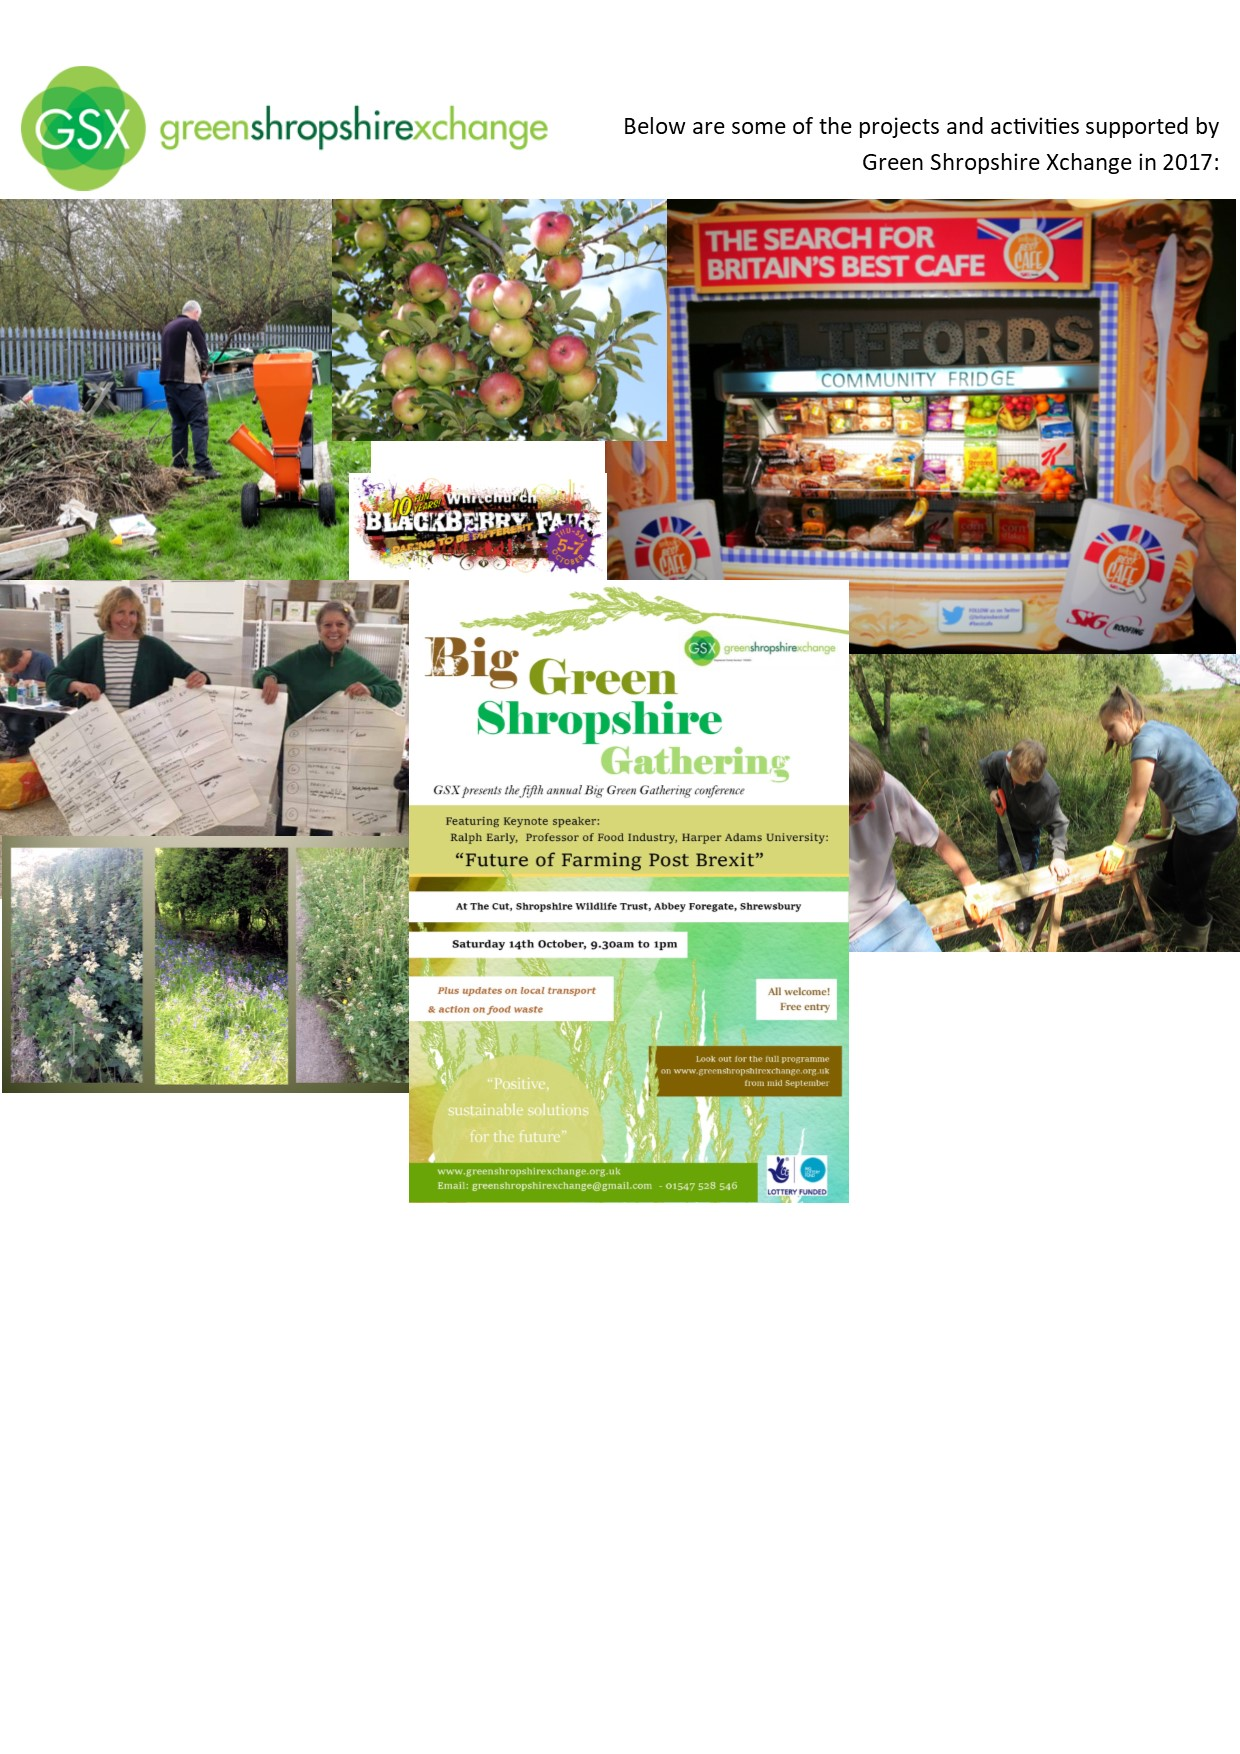 Some of the projects and activities that Green Shropshire Xchange (GSX) supported in 2017